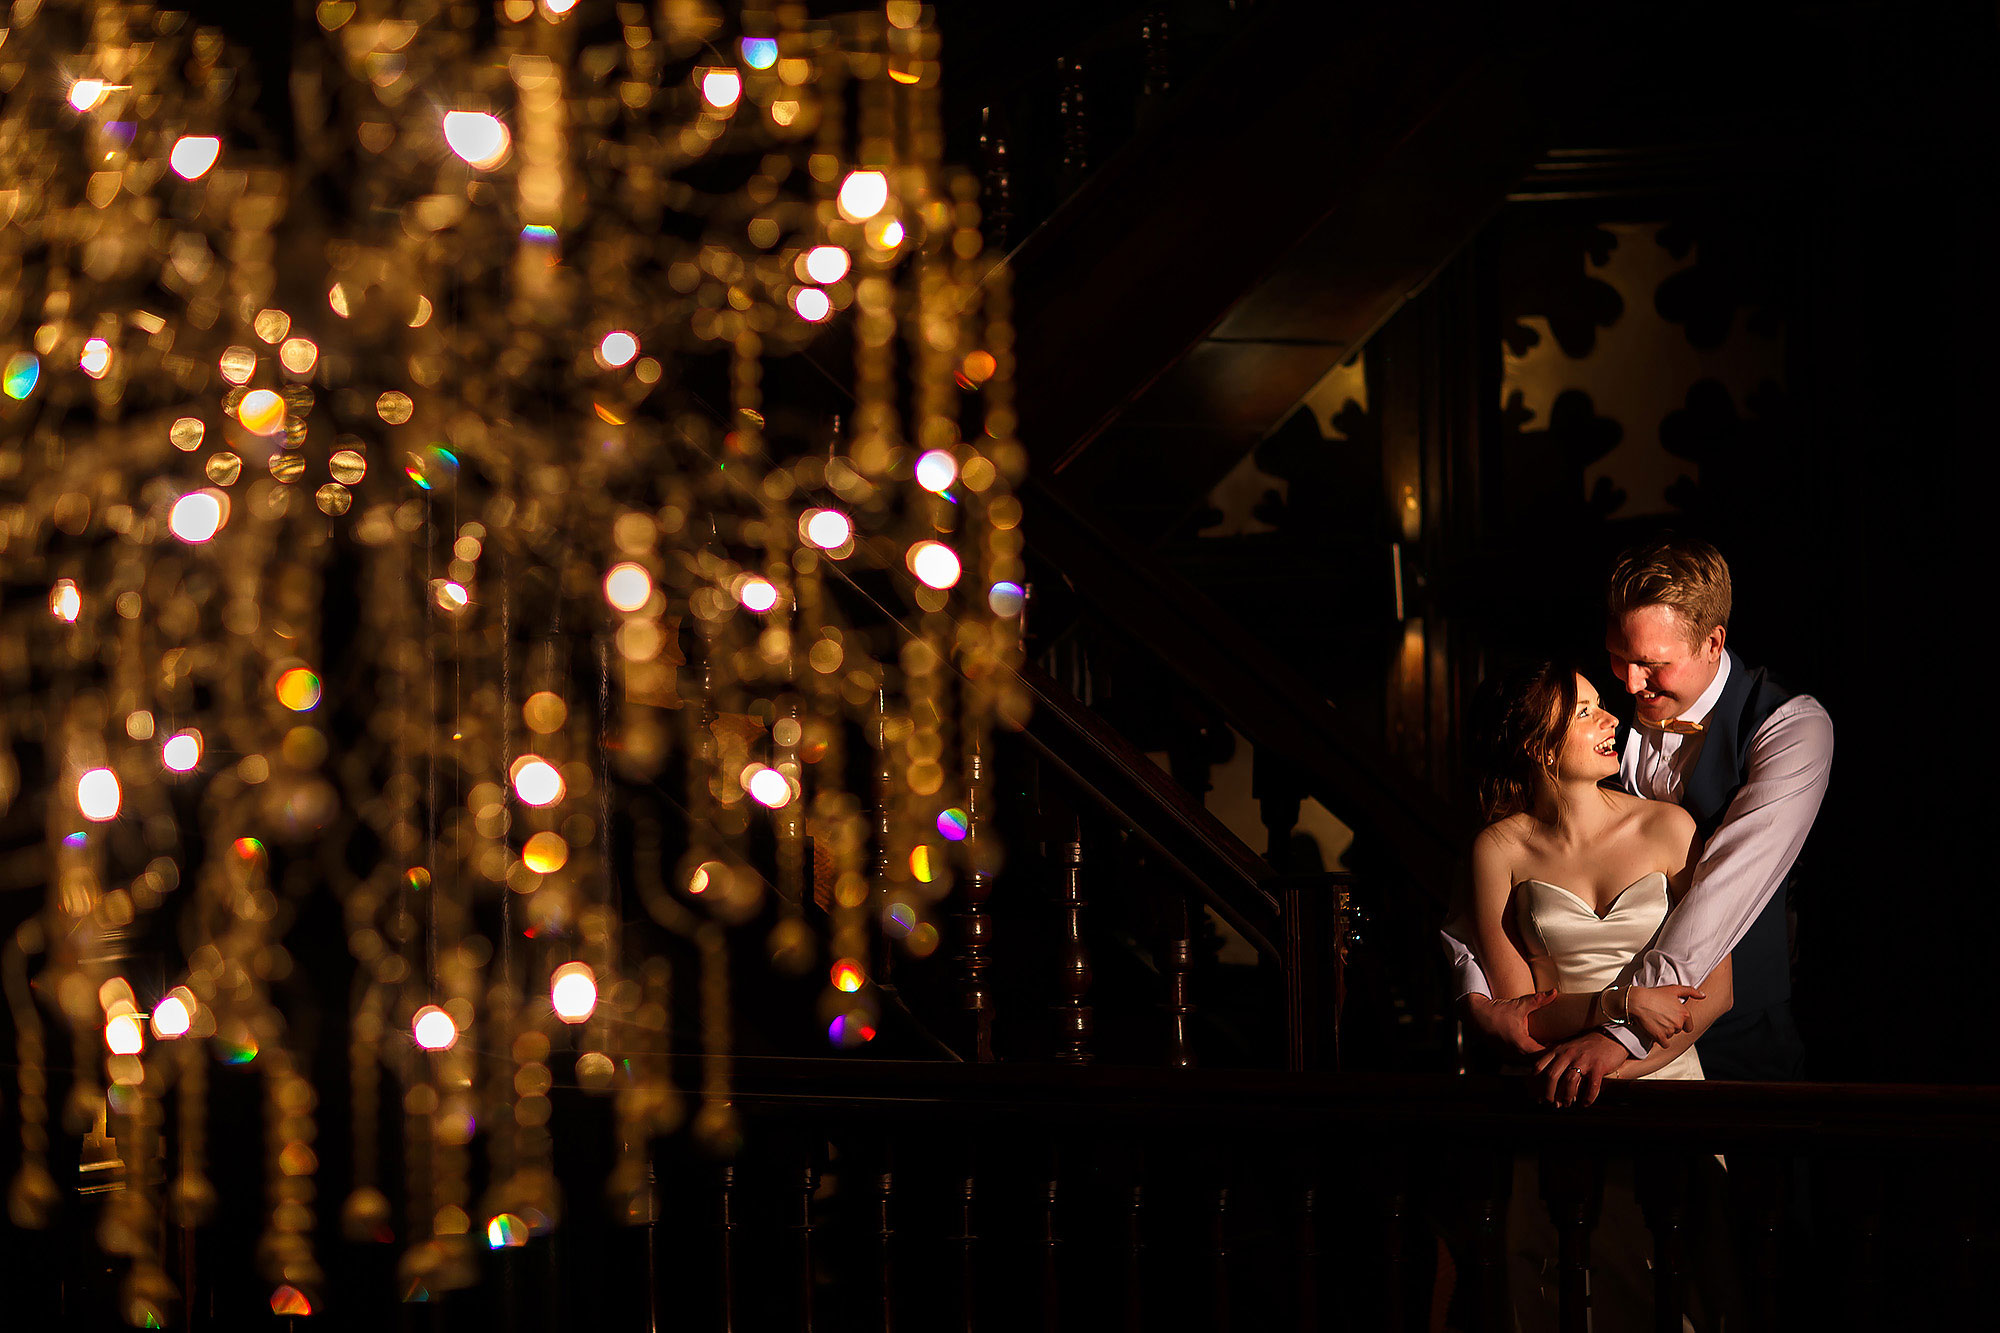 Bride and groom stood on the balcony inside Mitton Hall with large chandelier lighting them | Mitton Hall wedding photographs by Toni Darcy Photography